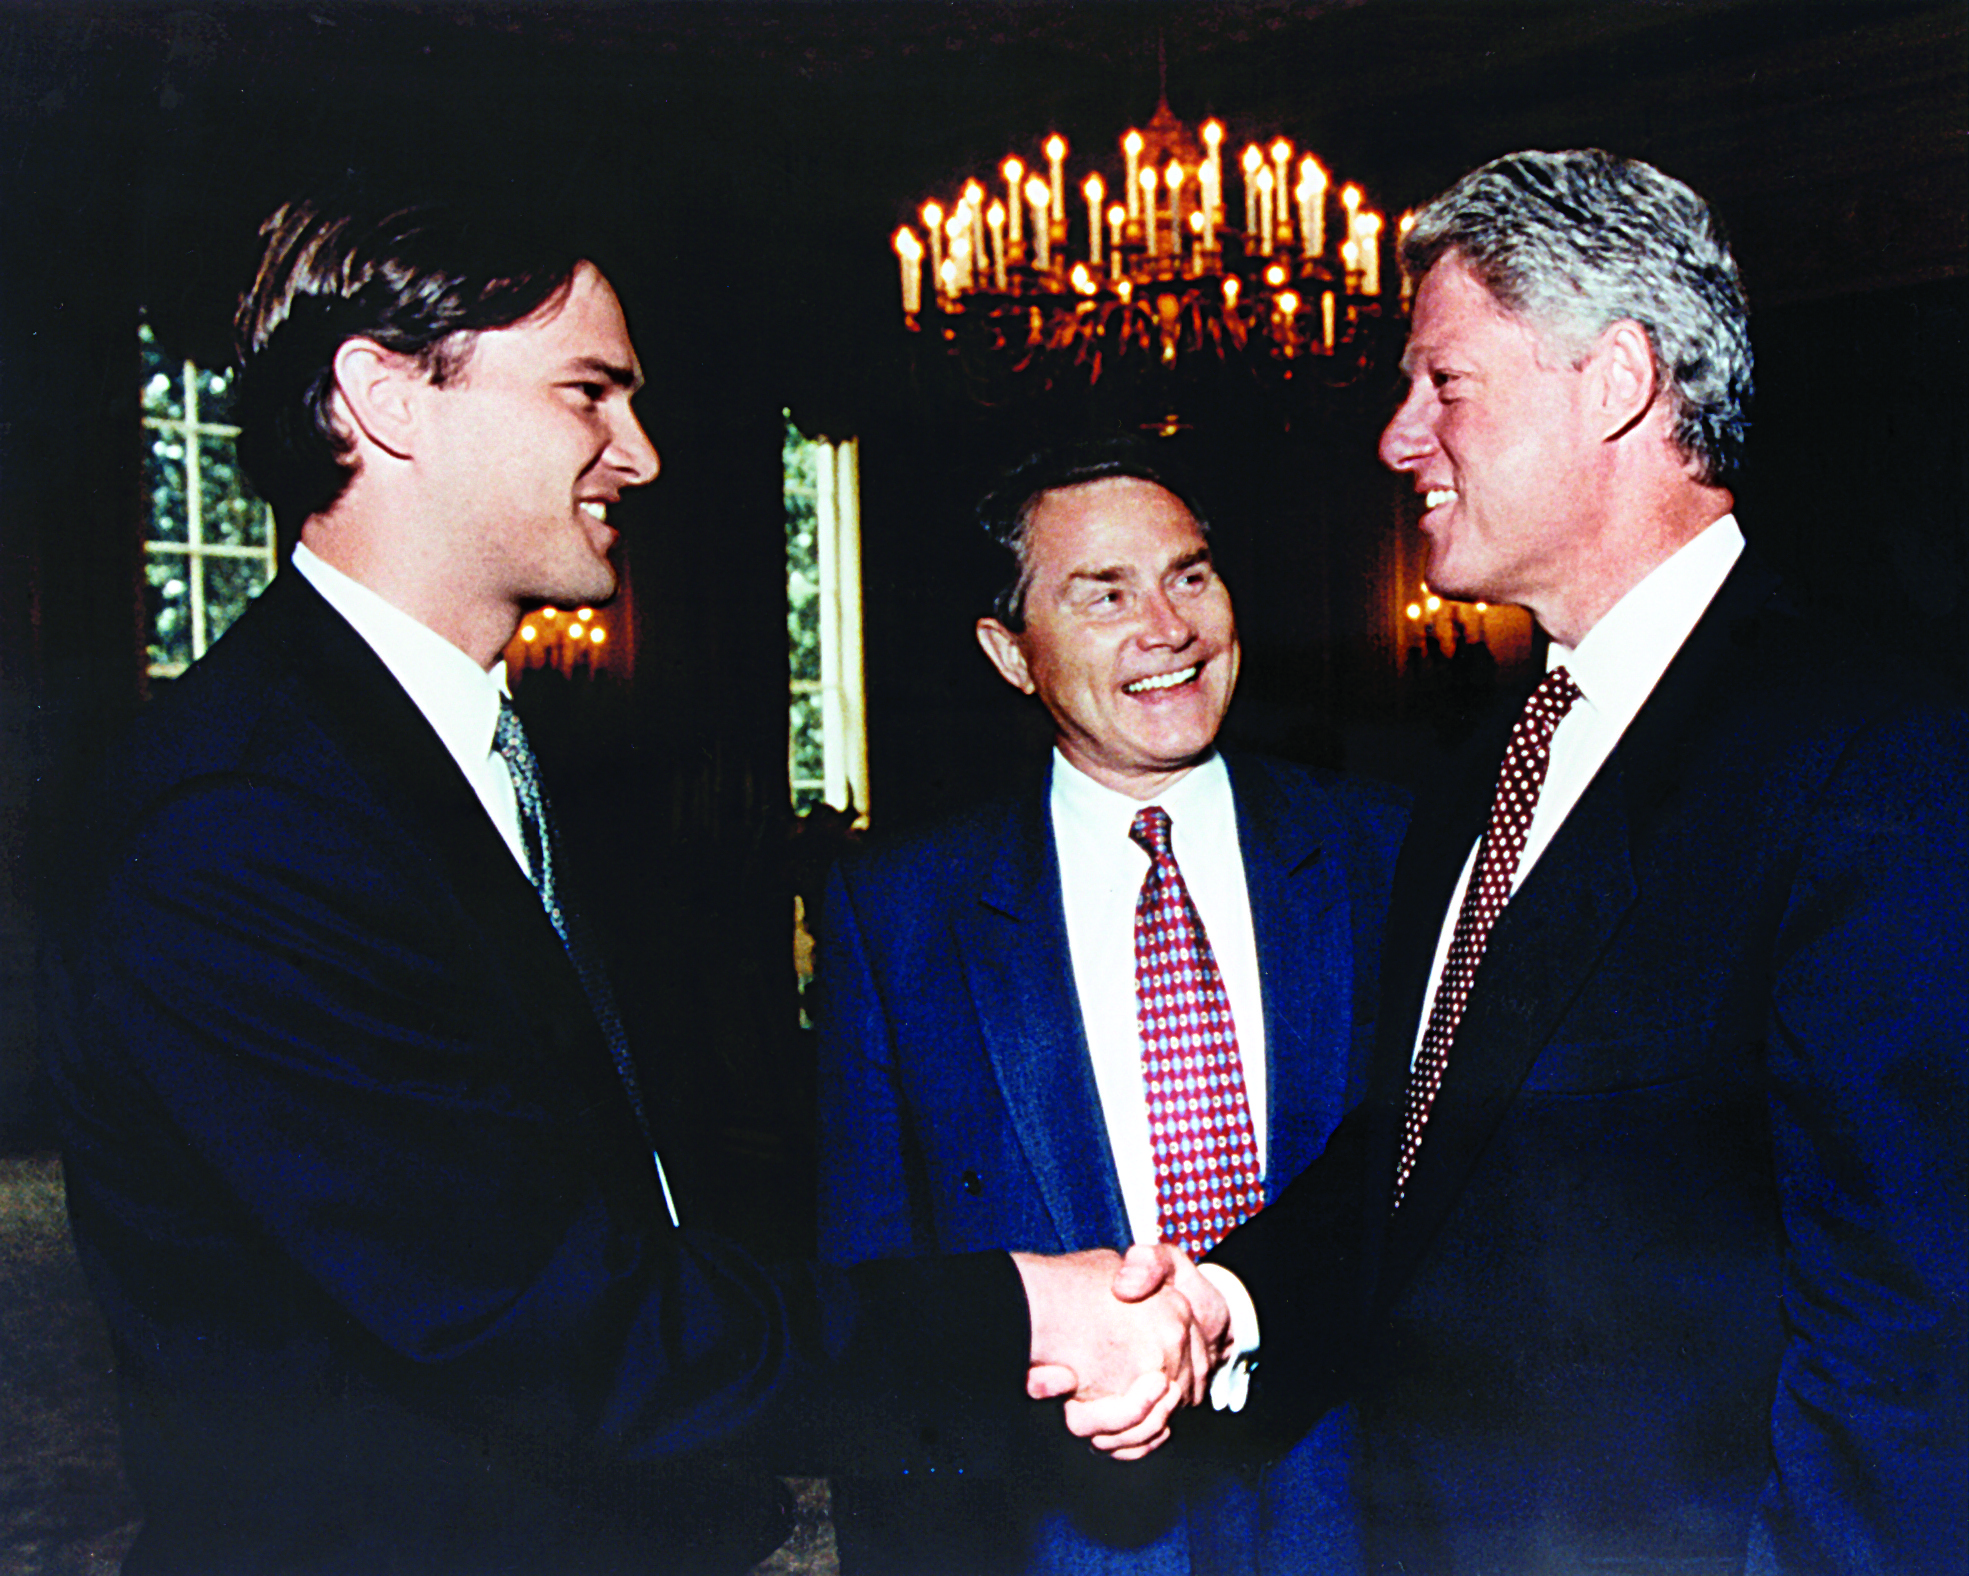 President Bill Clinton Greets Andrew Palau and Luis at the Presidential Inaugural, Washington D.C., 1997